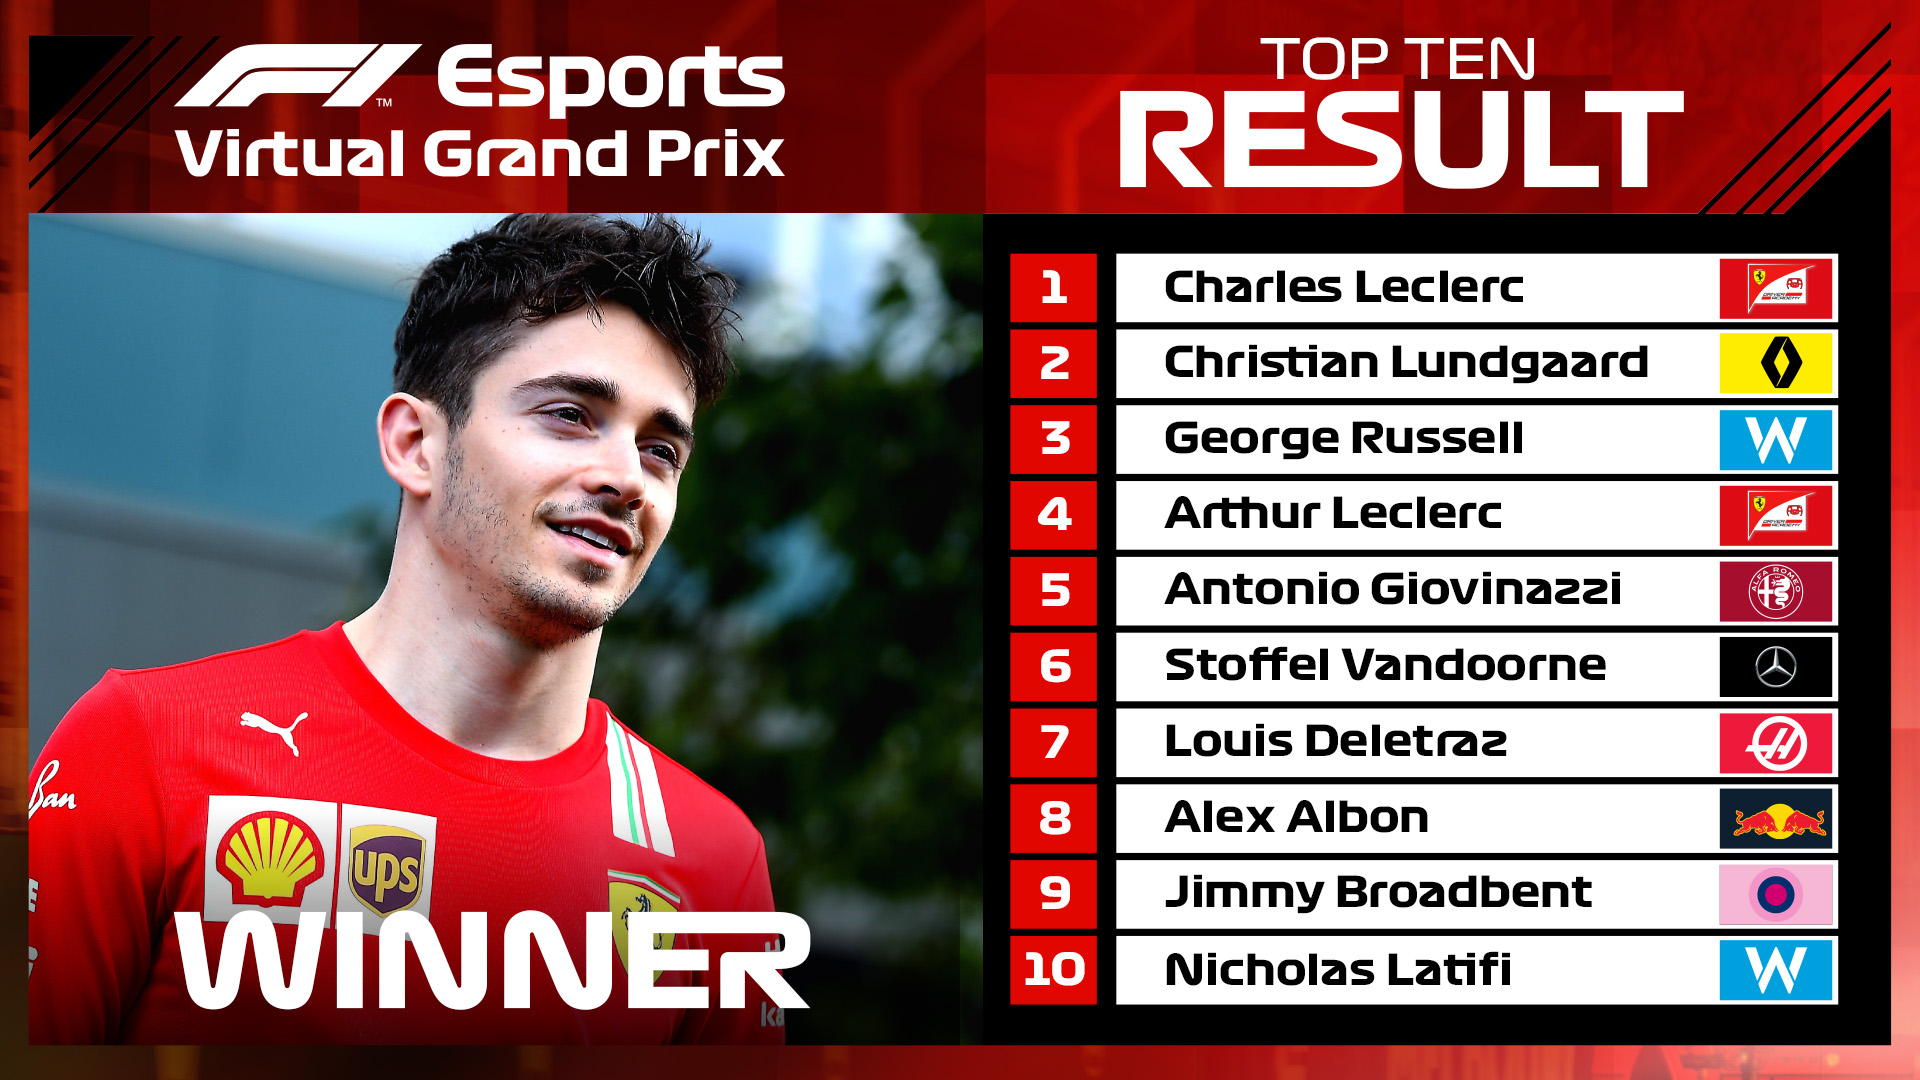 Charles Leclerc made it one from one in his F1 Virtual Grand Prix debut.